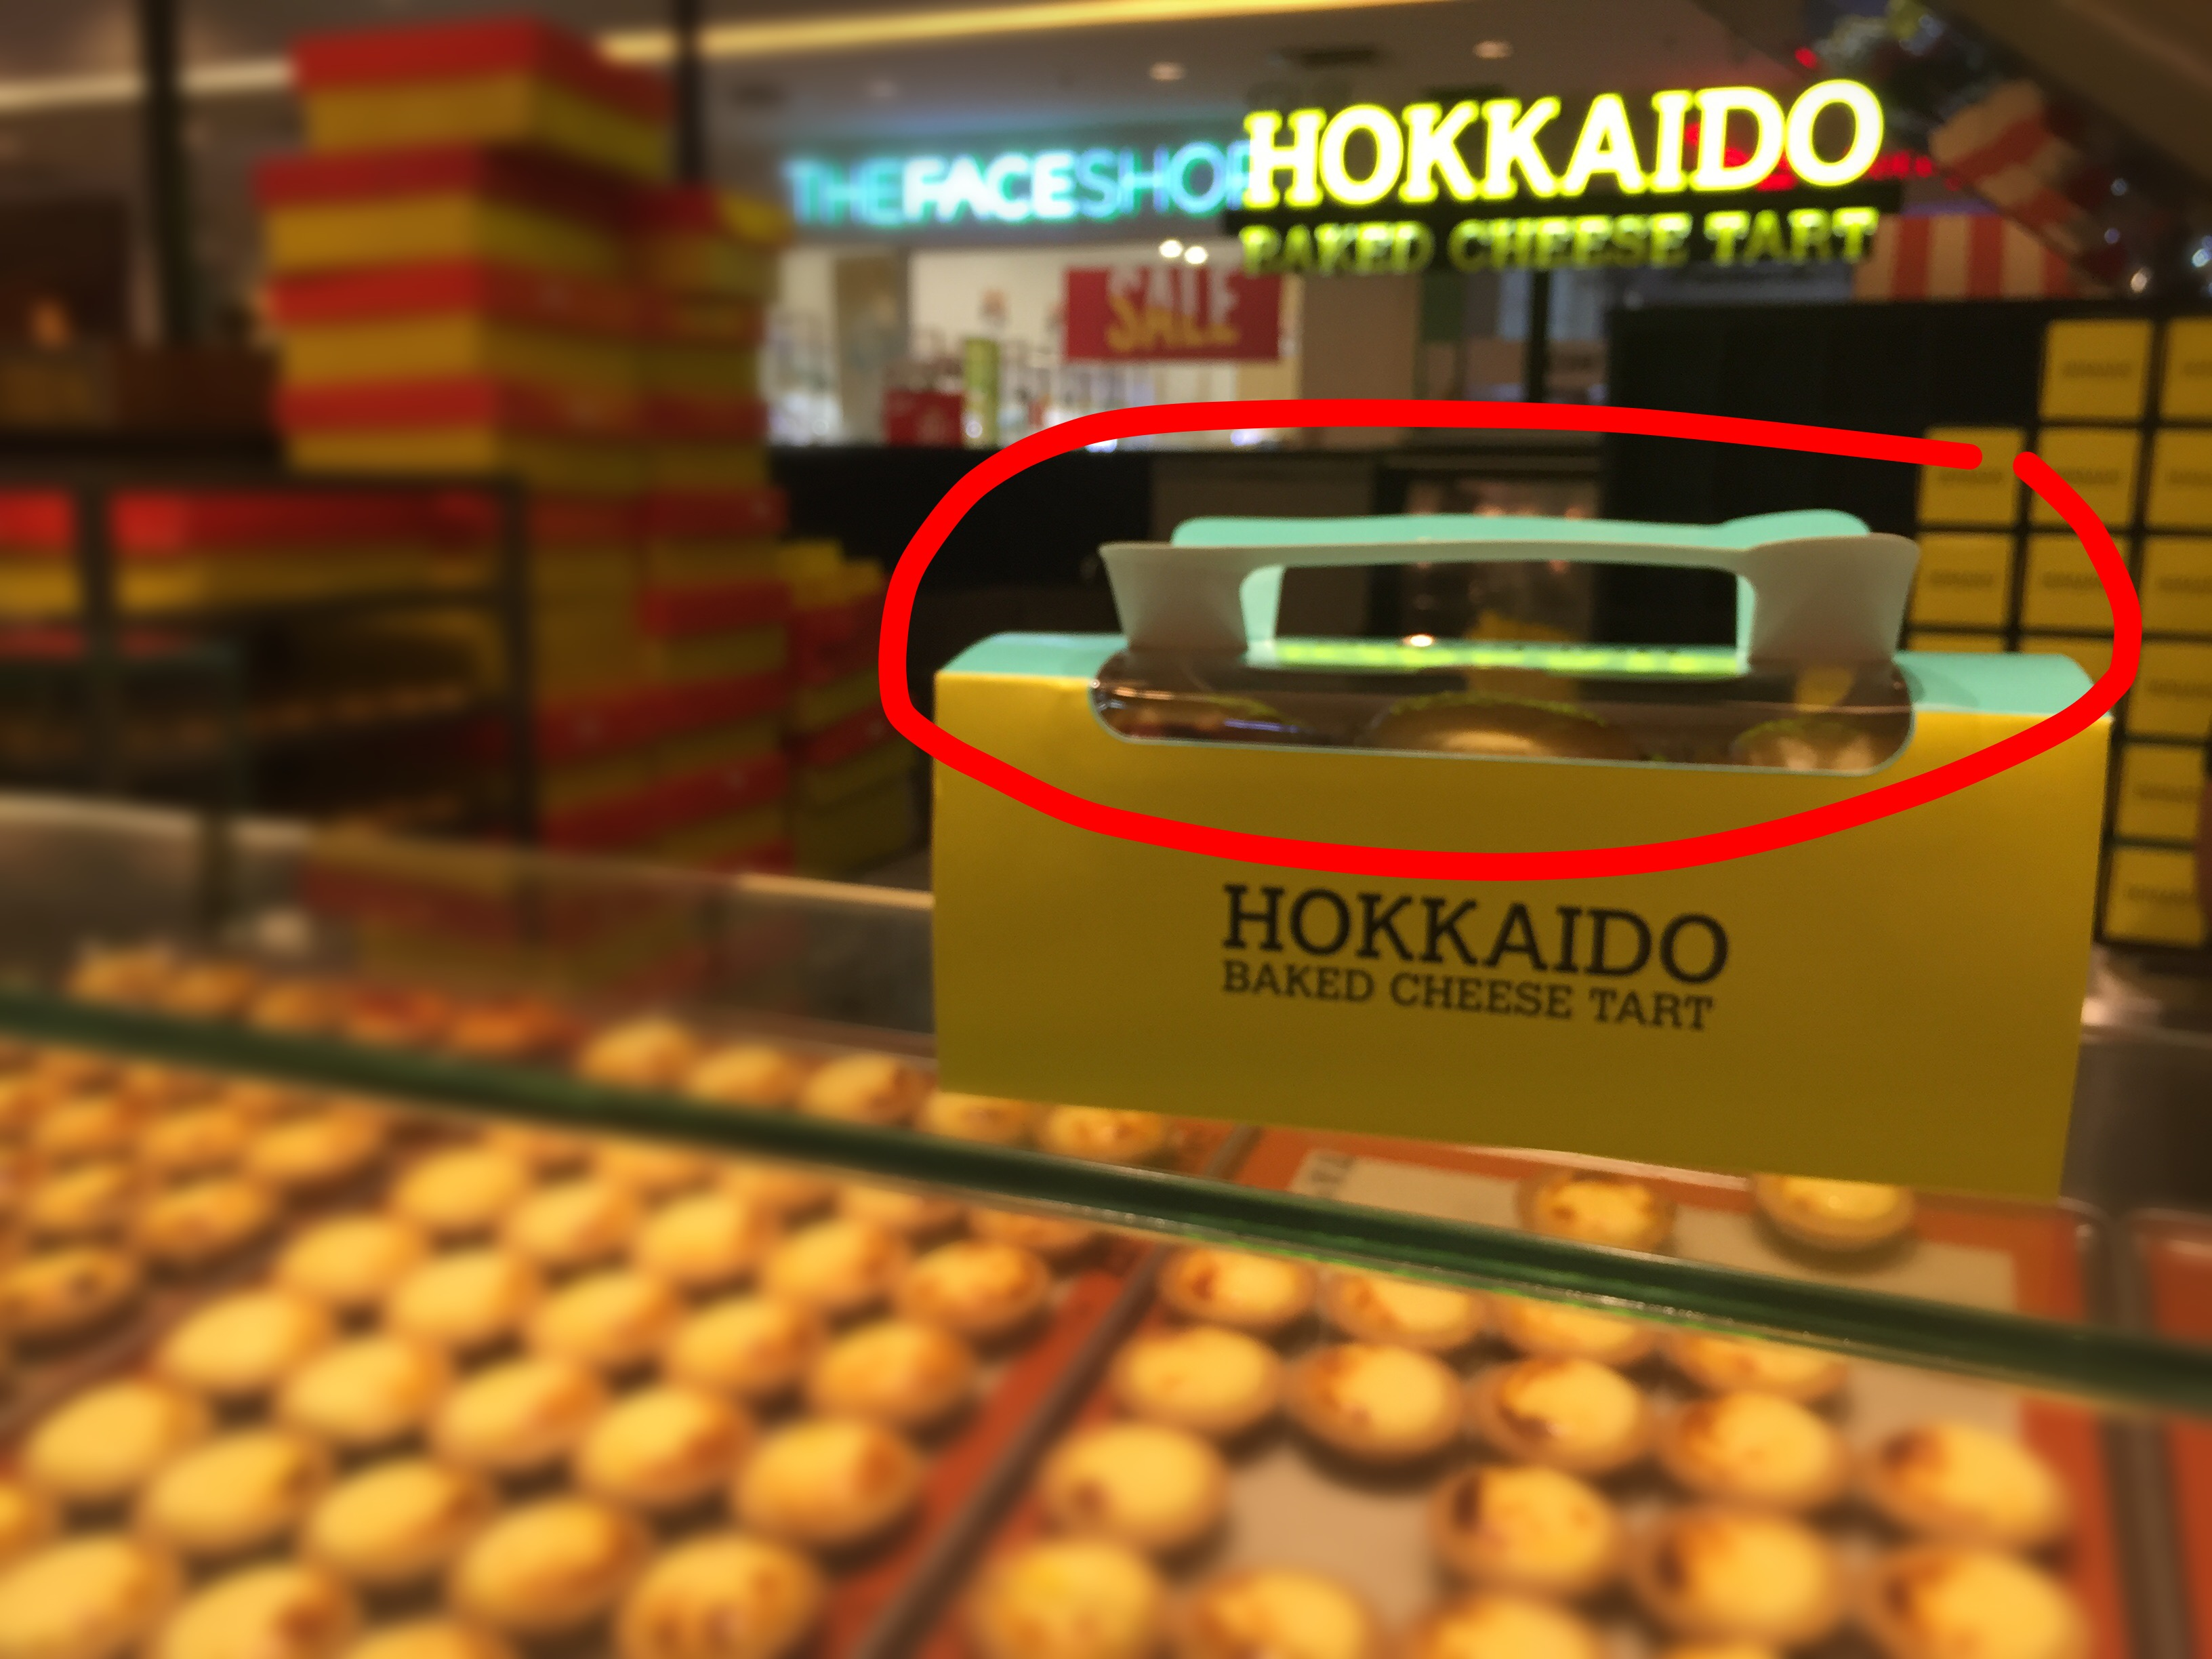 Hokkaido Baked Cheese Tart Buy With Caution Not Your